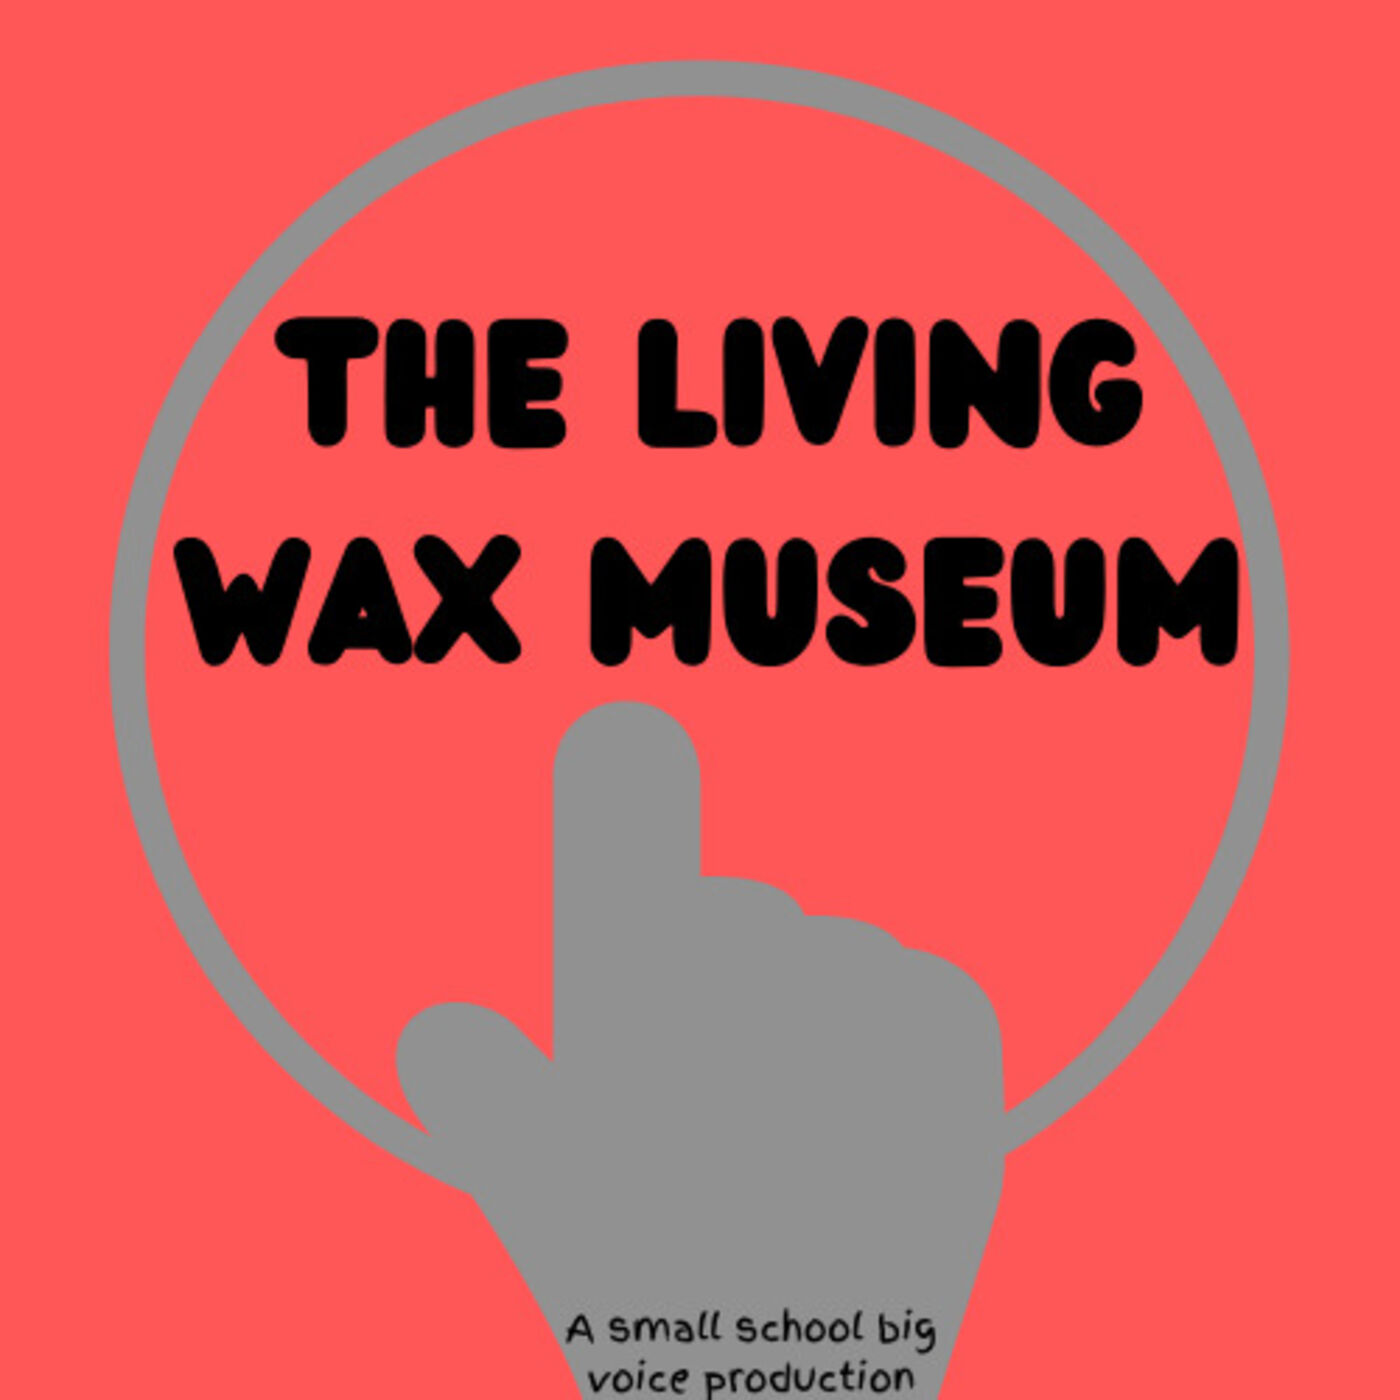 The Living Wax Museum